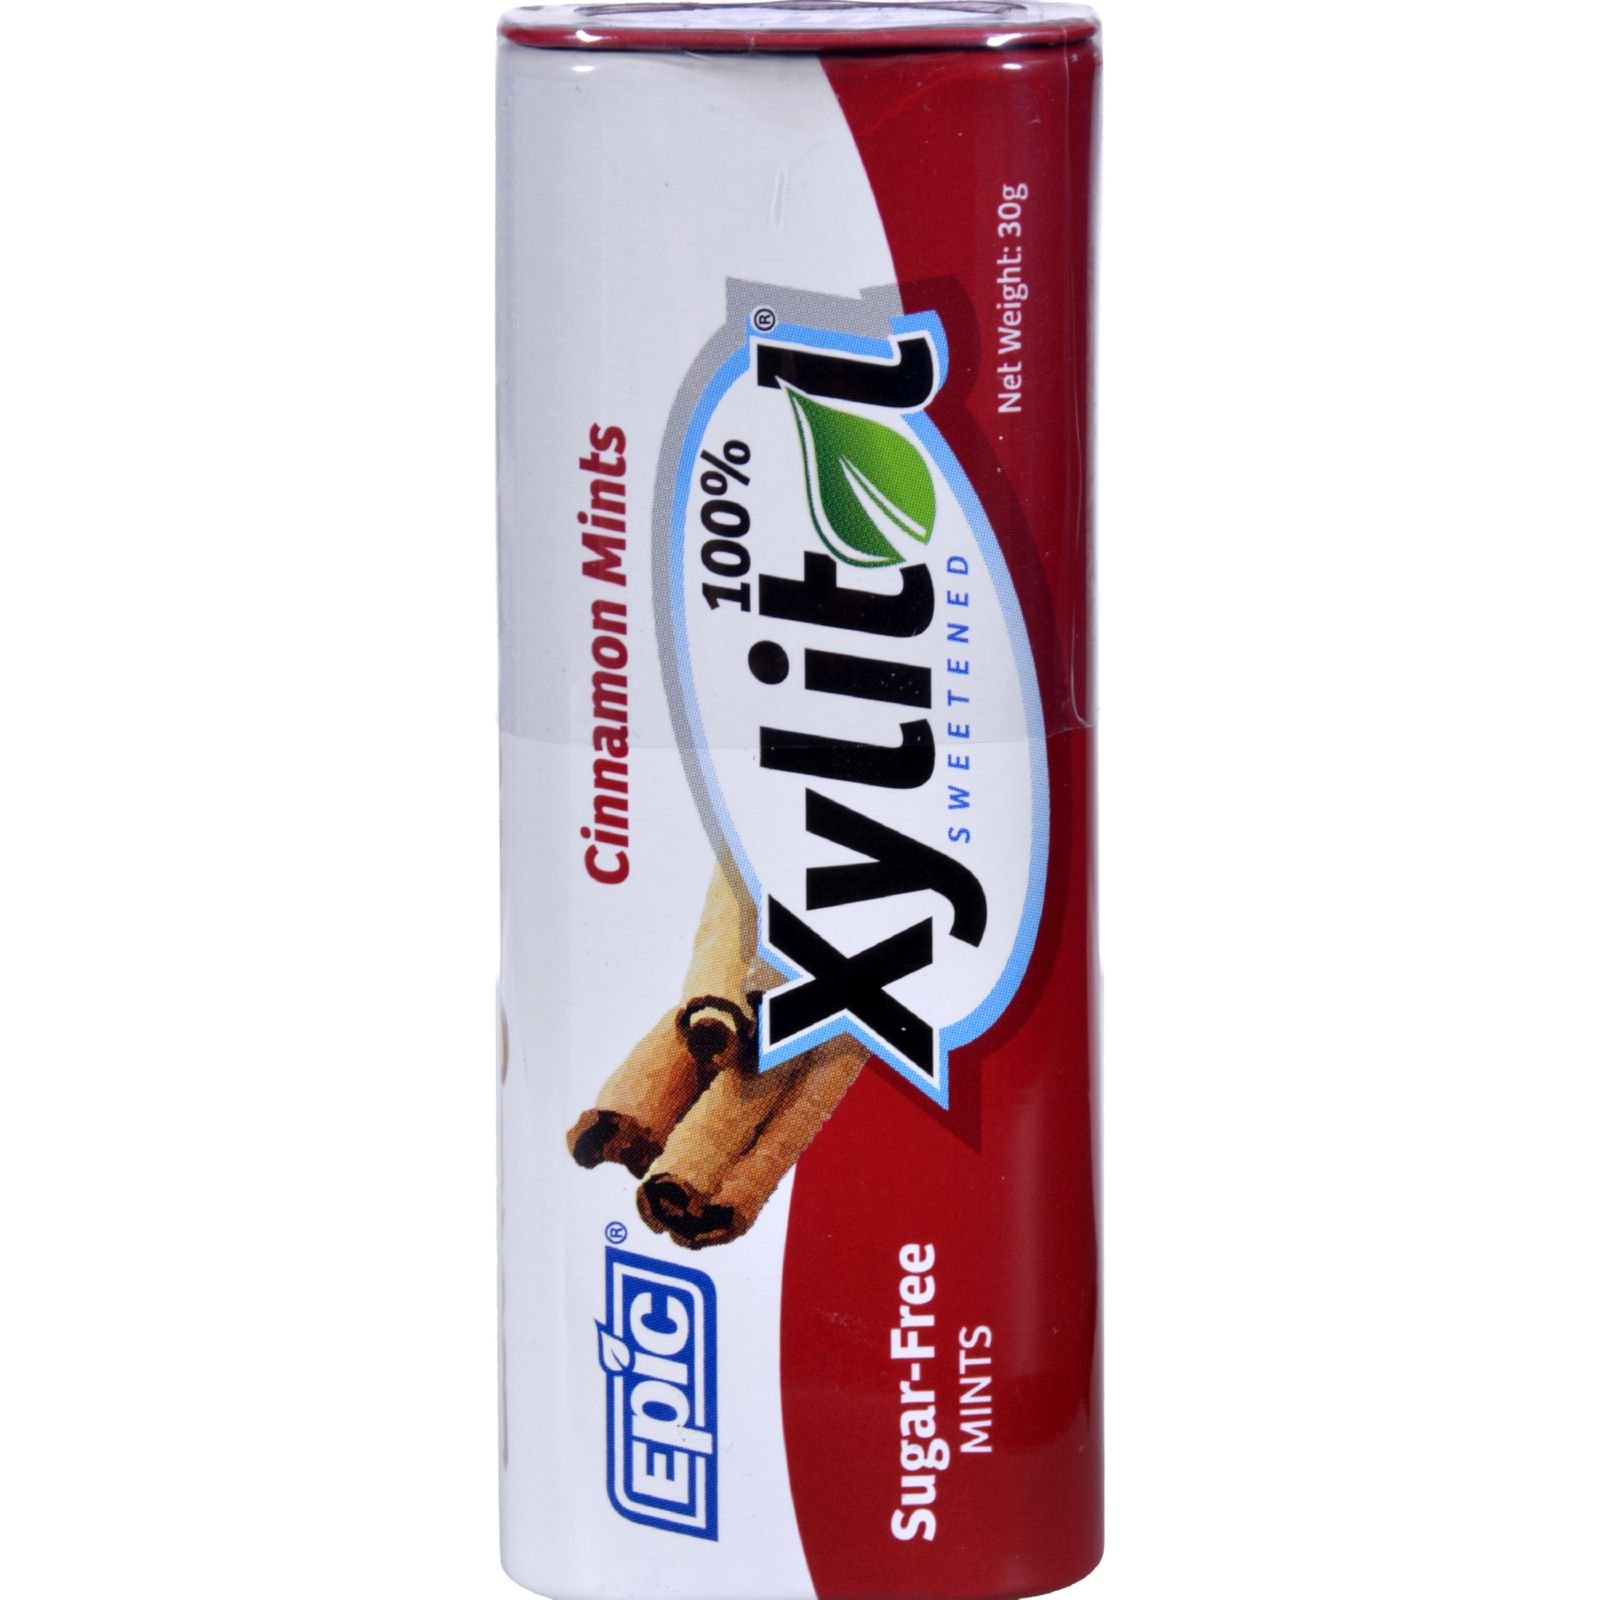 Epic Dental Mints - Cinnamon Xylitol Tin - 60 Count - Case of 10 - Gluten Free - Wheat Free - Vegan - Sugar Free Mints